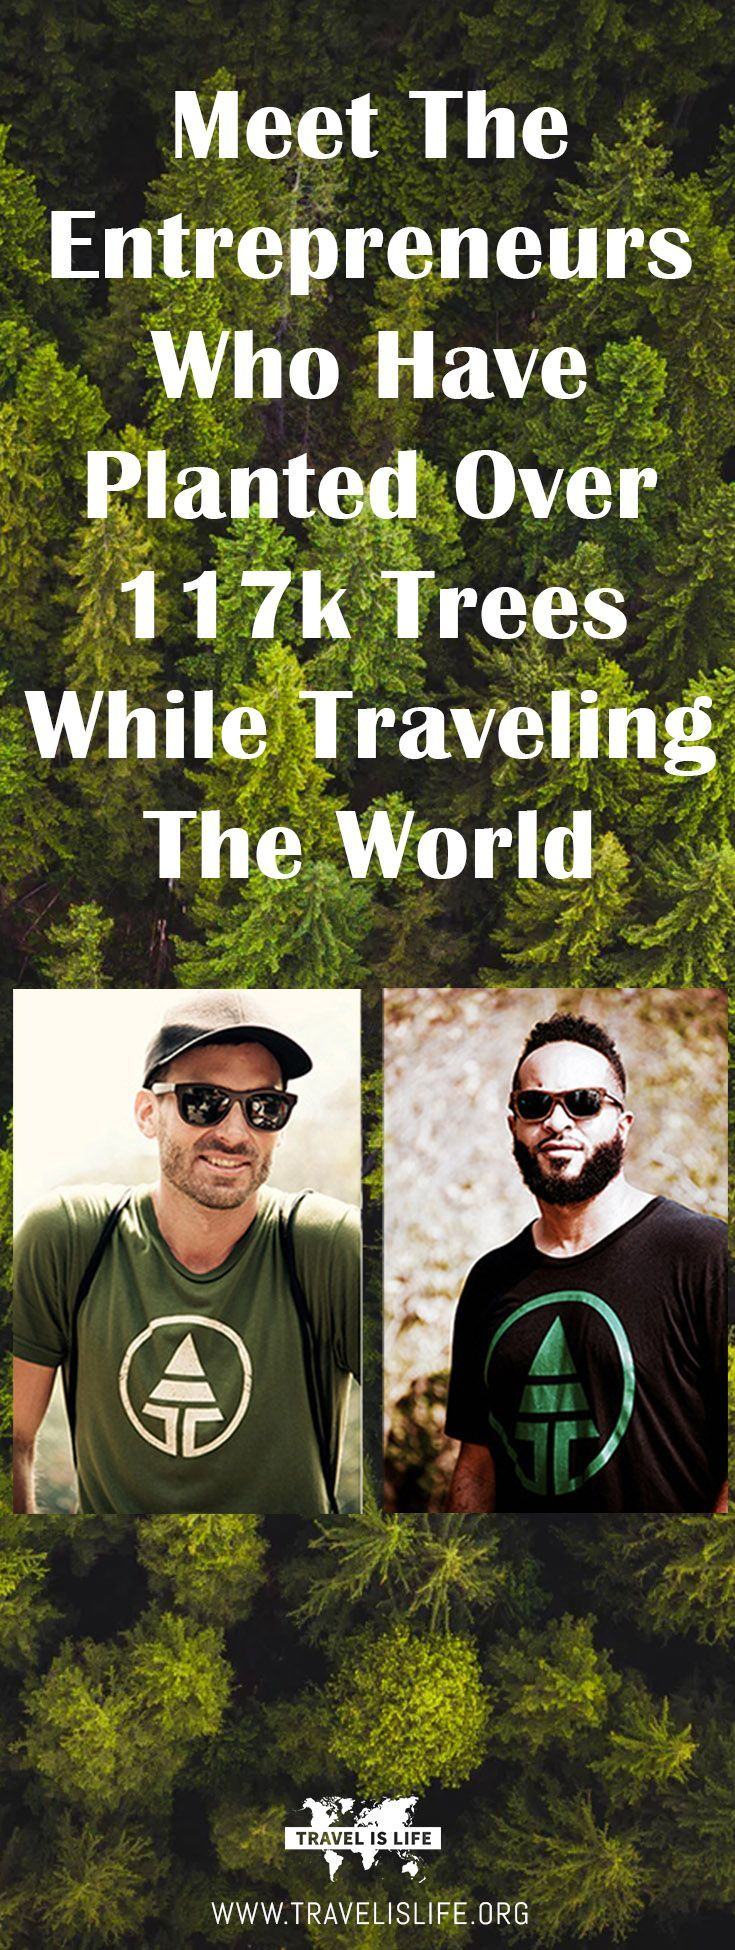 Meet Joe and Sharif, the founders of Tree Tribe - an outdoor lifestyle brand that plants 10 trees for every sale they make. Brought to you by TravelisLife.org. #treelove #treetribe #travel #digitalnomads #nomadlife #nomadentrepreneurs